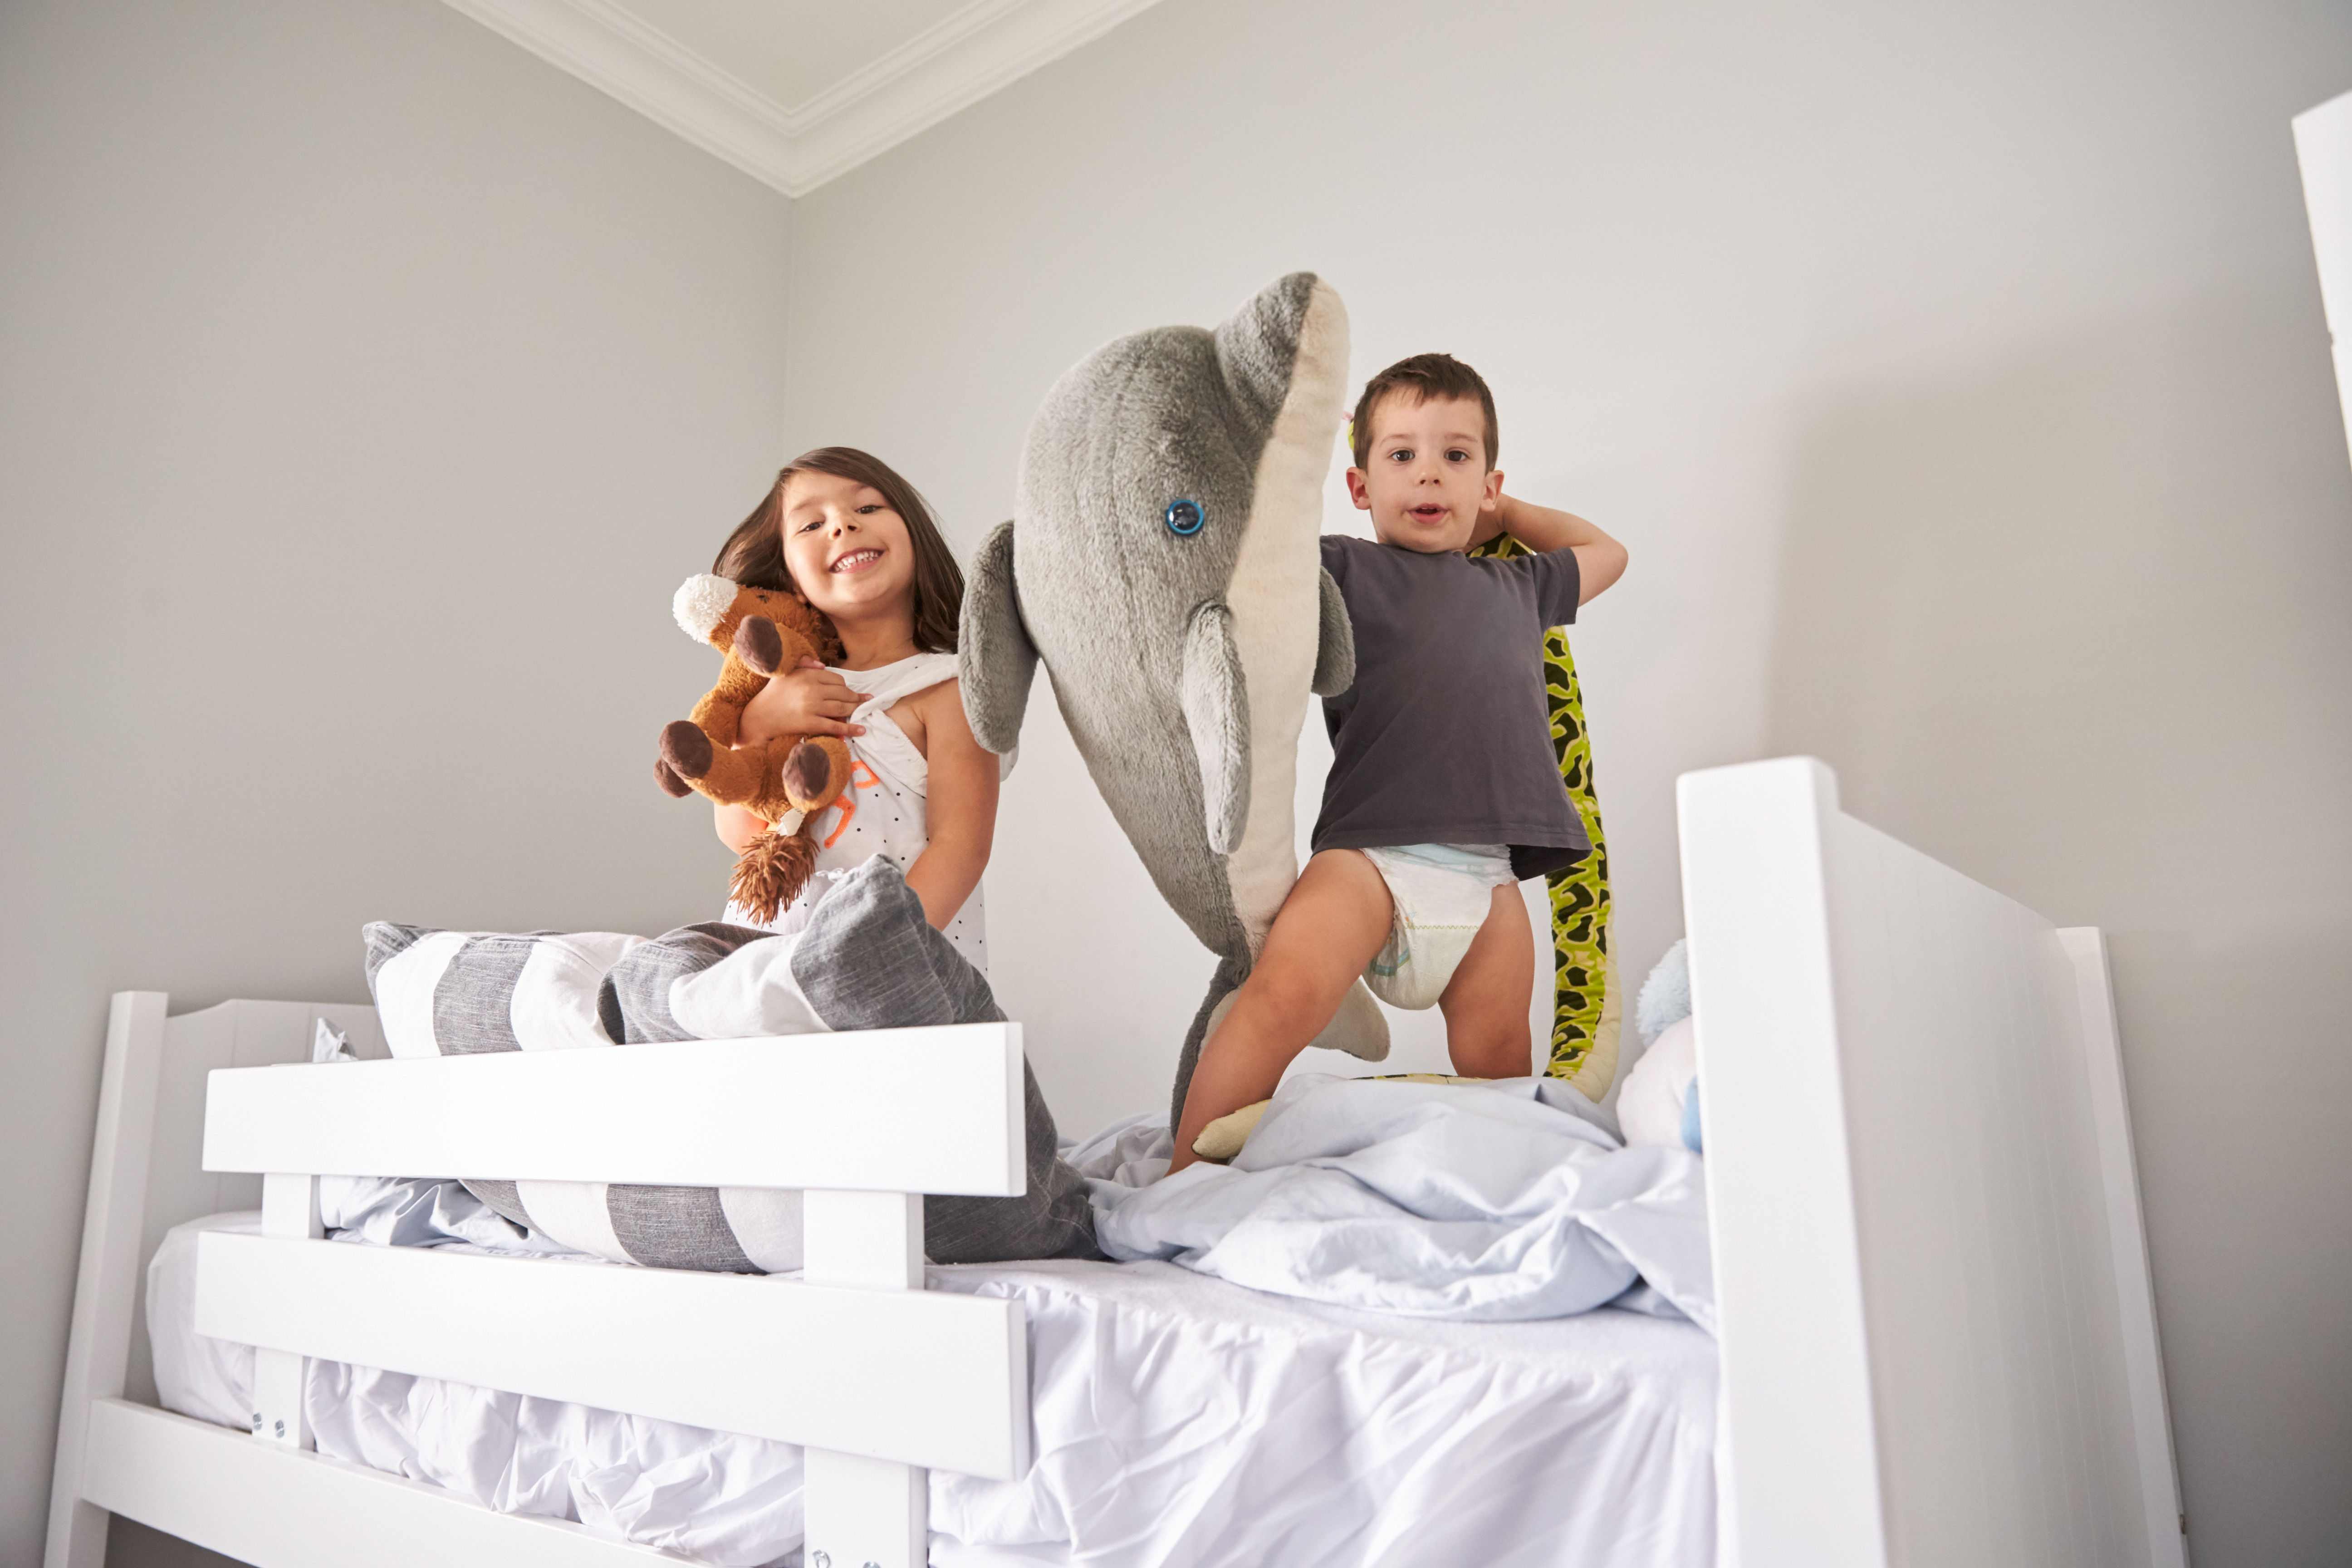 Top tips for bunk bed safety